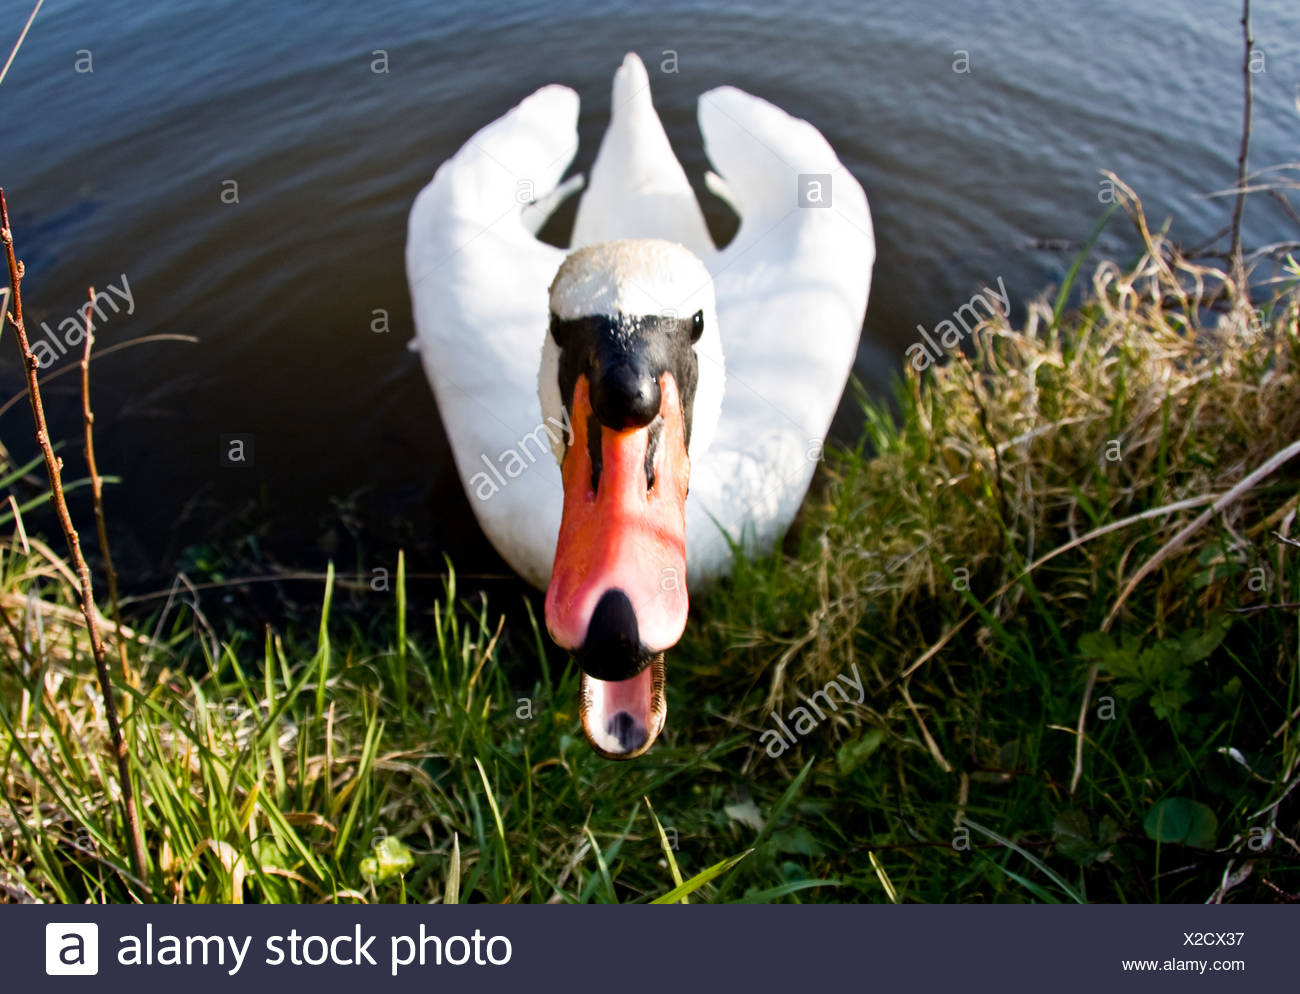 threaten,snarling,swan - Stock Image